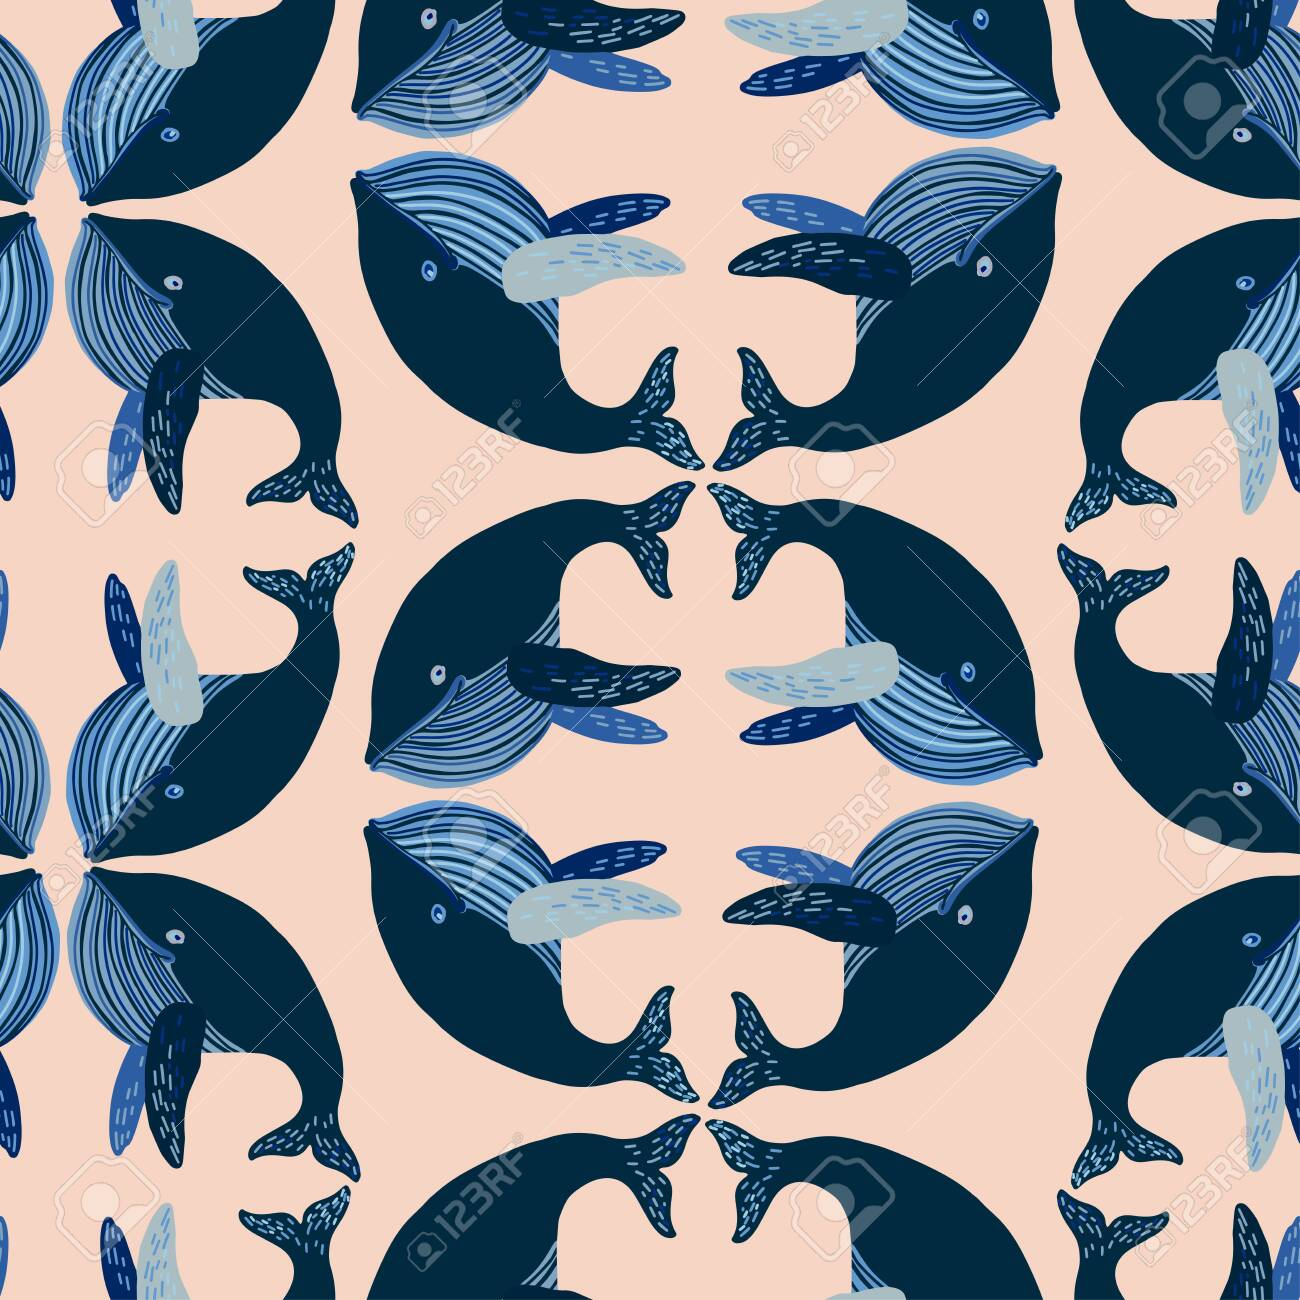 Seamless Vector Design With Stylised Whales The Design Is